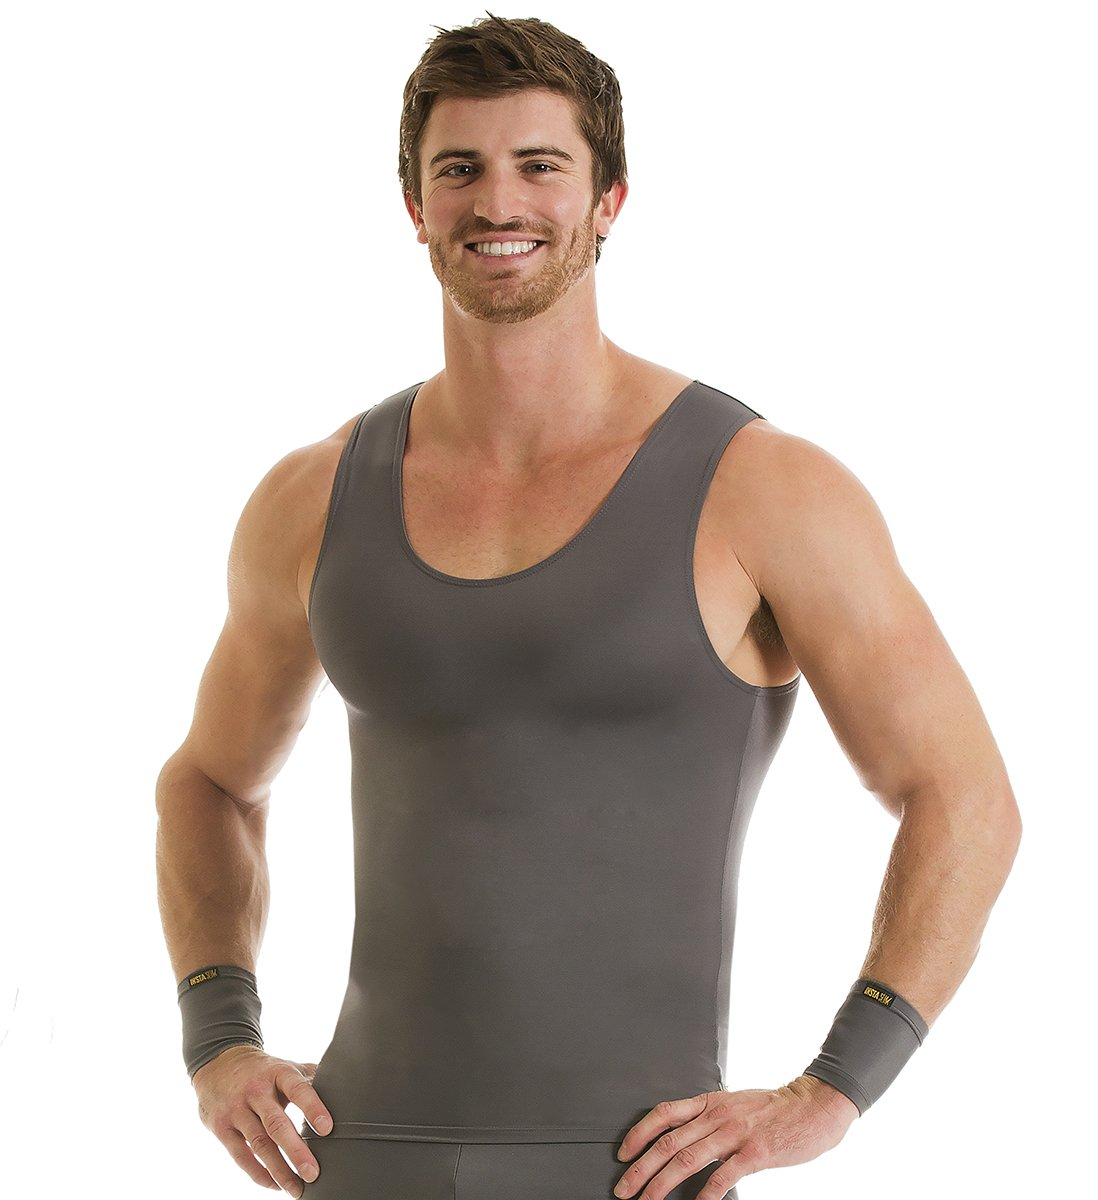 Insta Slim 3 Pack Muscle Tank, Look up to 5 inches Slimmer Instantly, Grey, Medium, The Magic is in The Fabric!